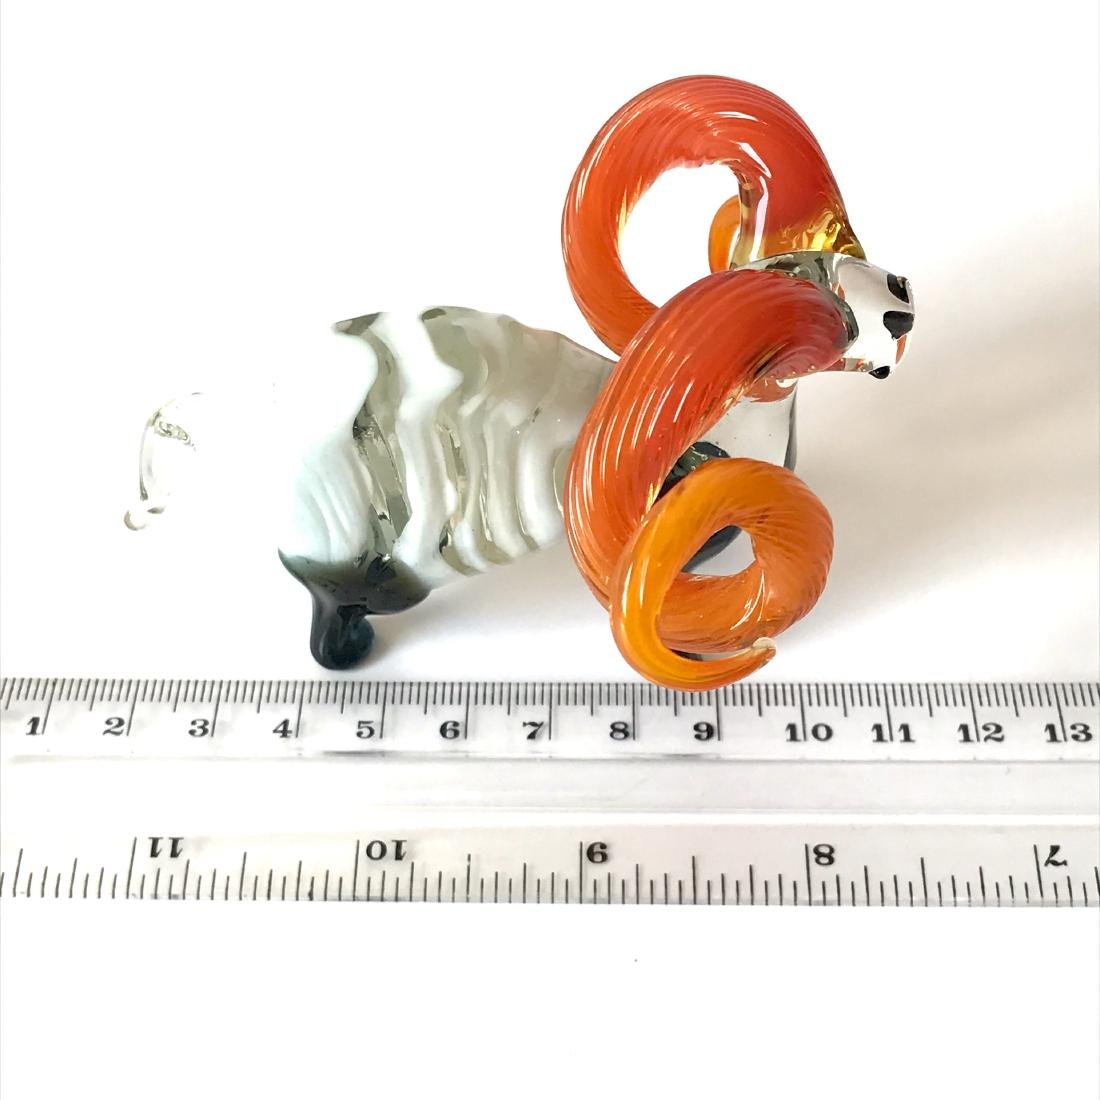 Figurine of flamehorn ram - hand blown glass - 10x7 cm - 6